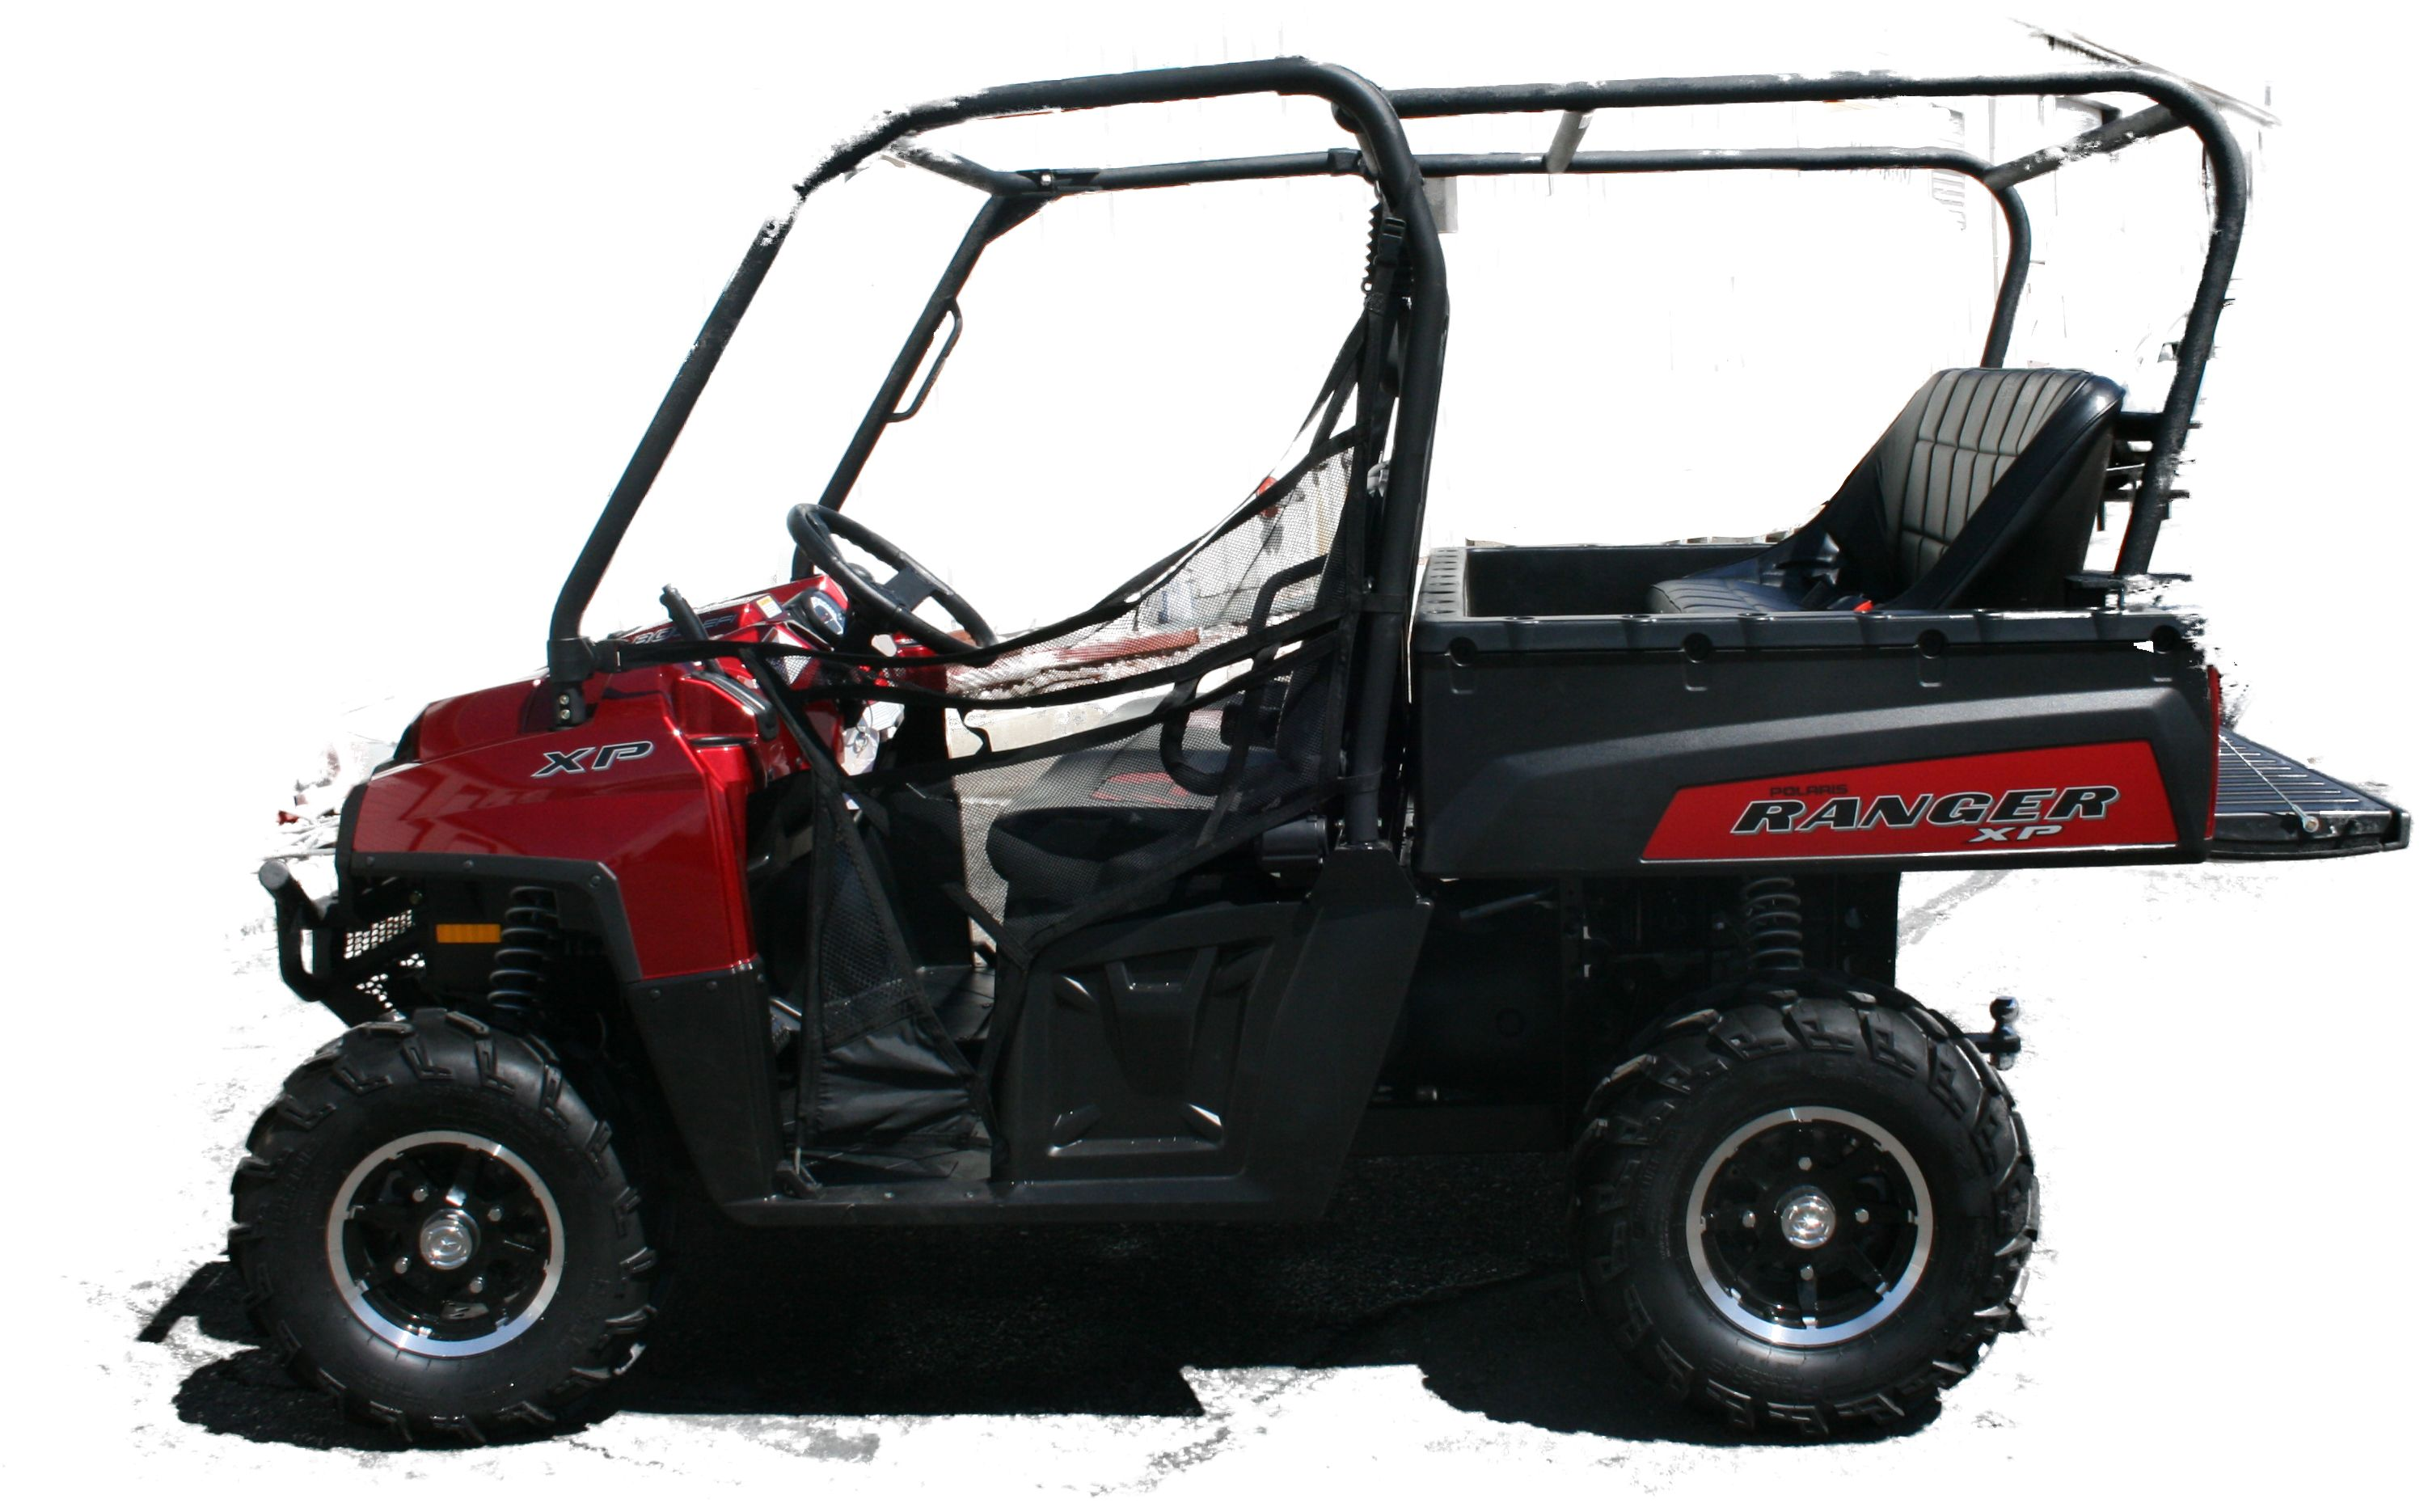 hight resolution of polaris ranger 800 back seat and roll cage kit designed to come in and out in minutes your kit includes polaris ranger 800 roll cage 42 bench seat 3 4